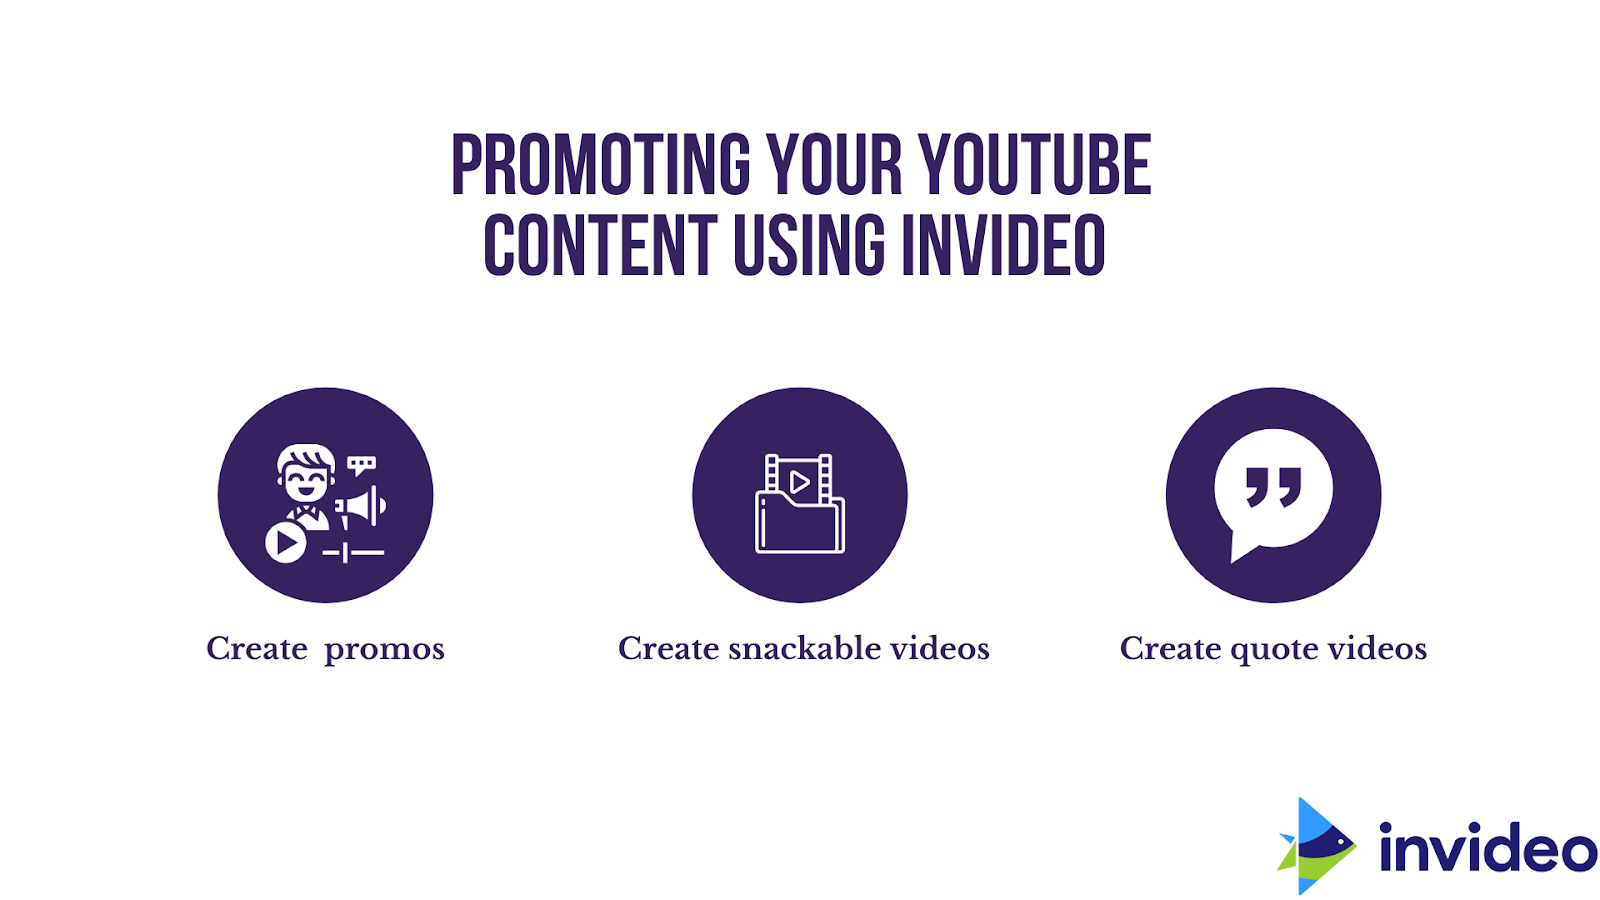 promoting your content using invideo